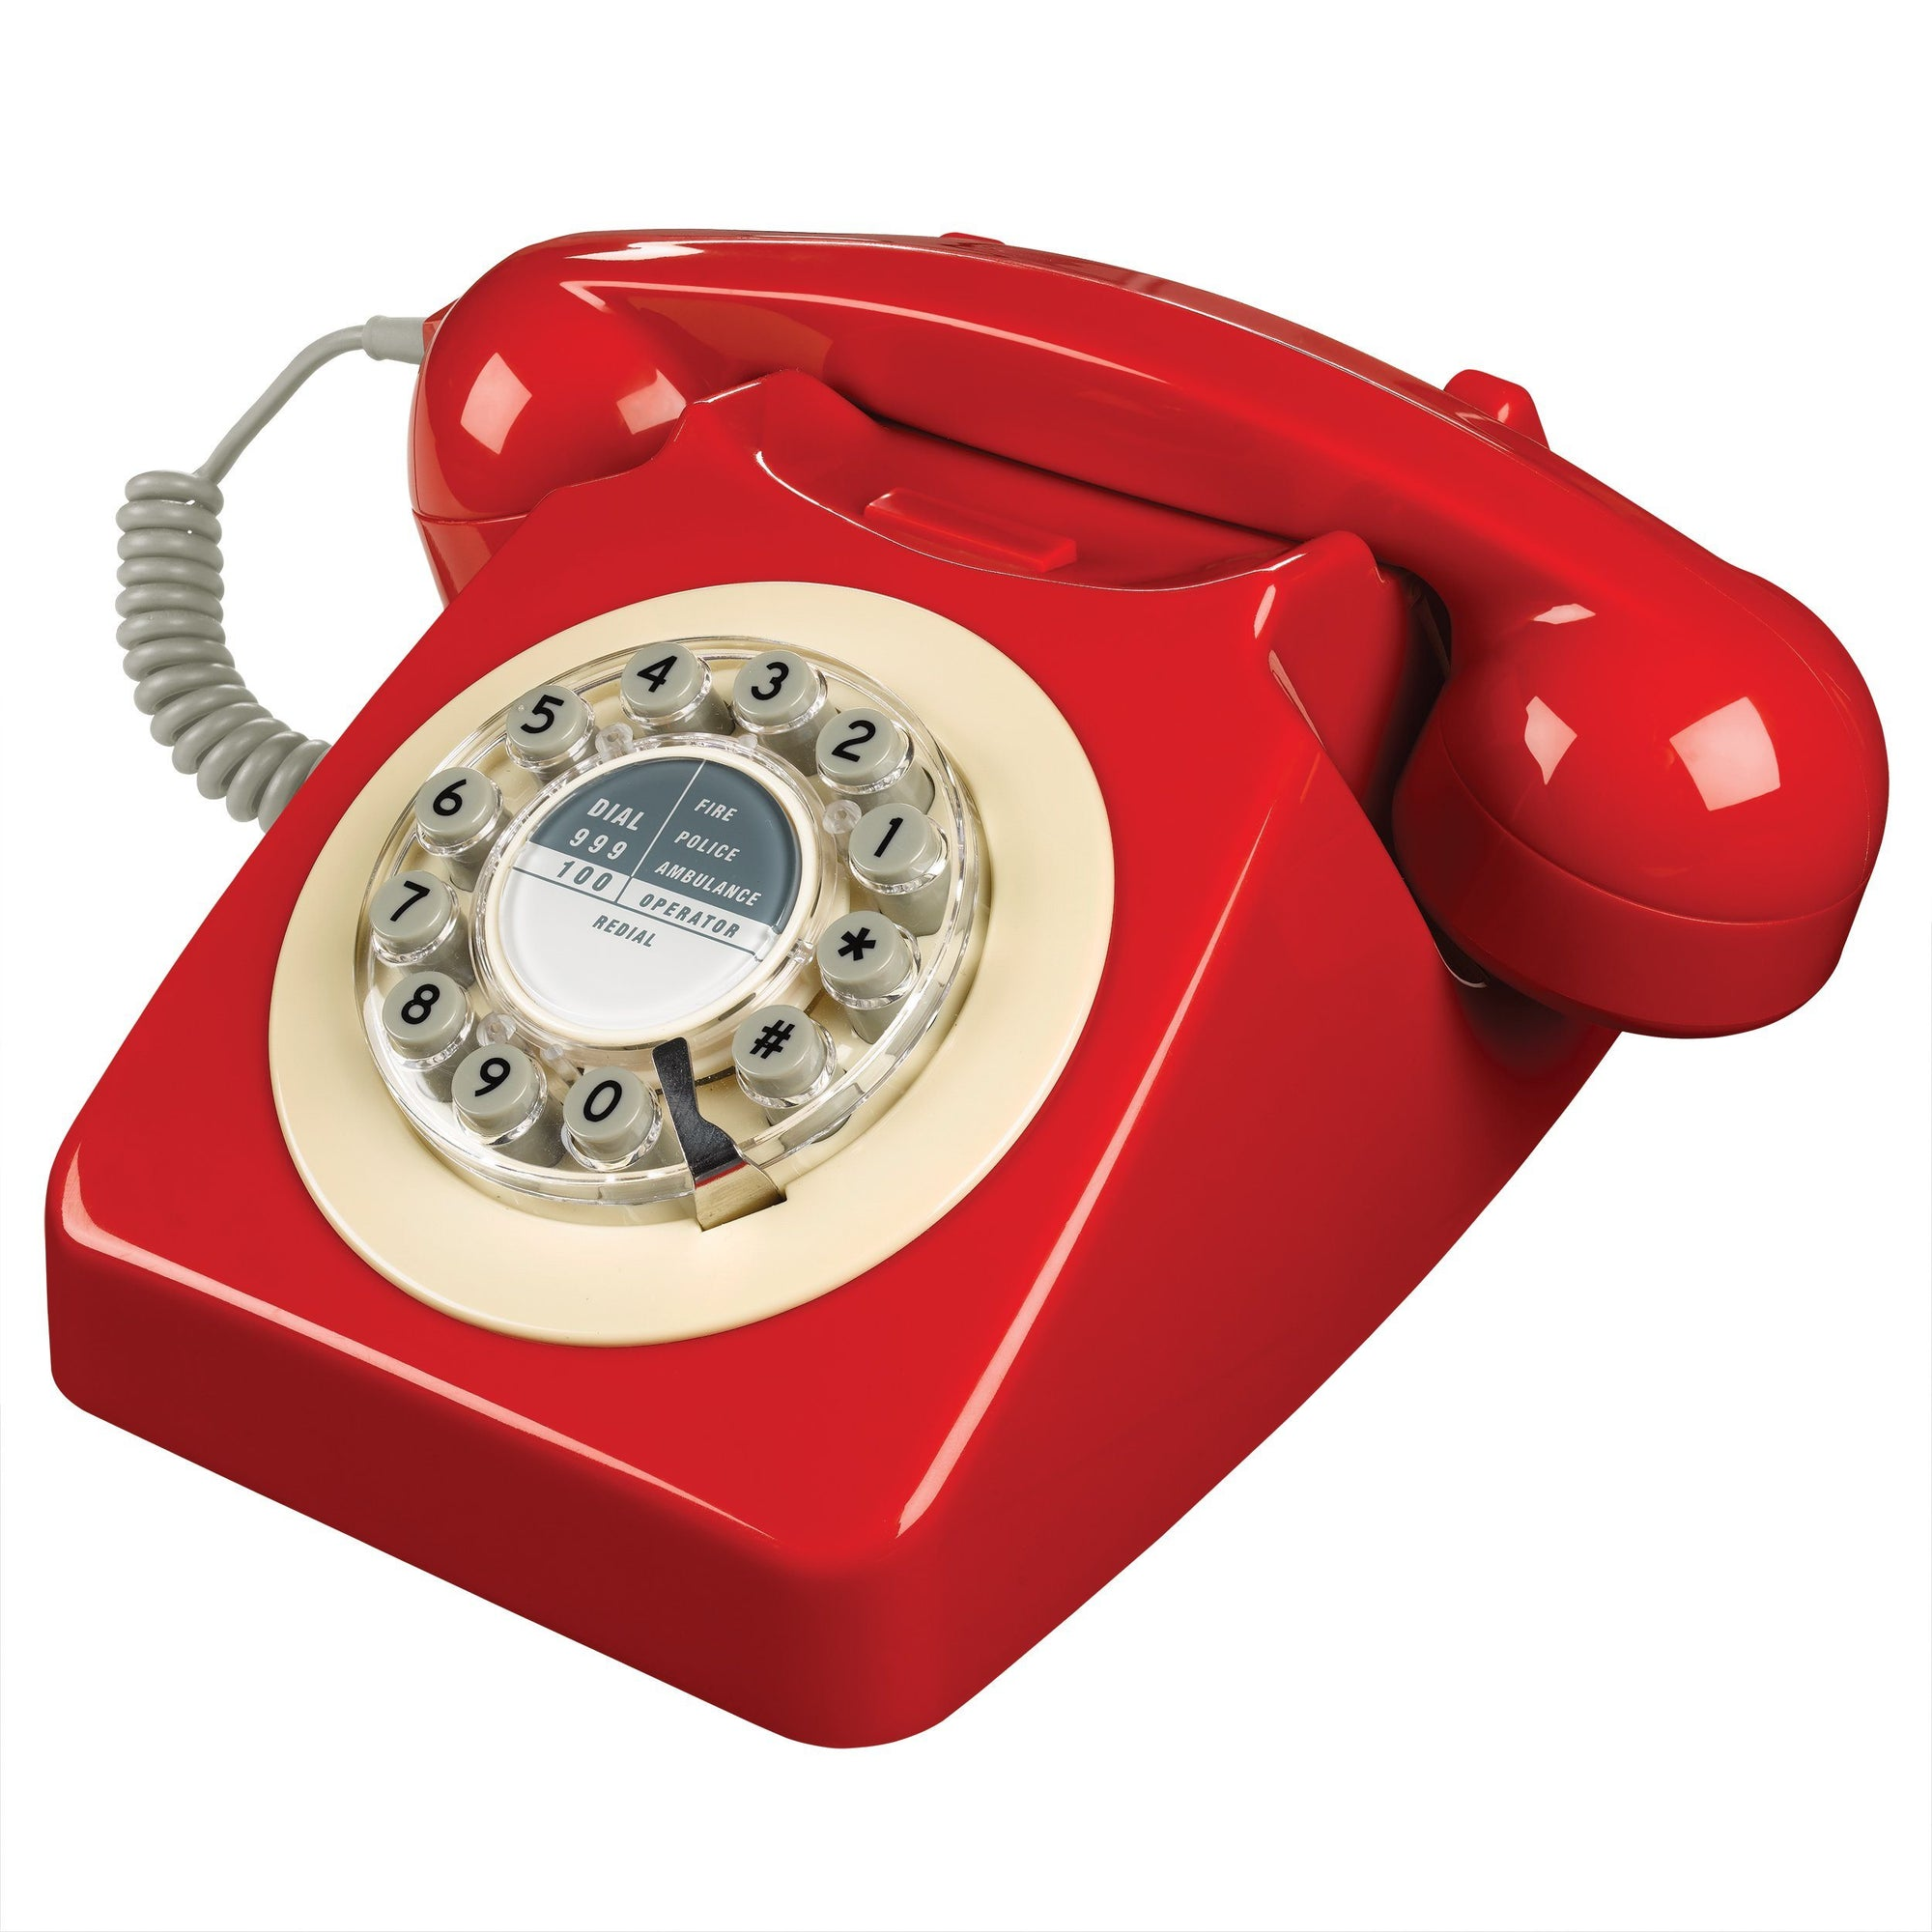 Red 746 Telephone Classic 1960's Design - BouChic